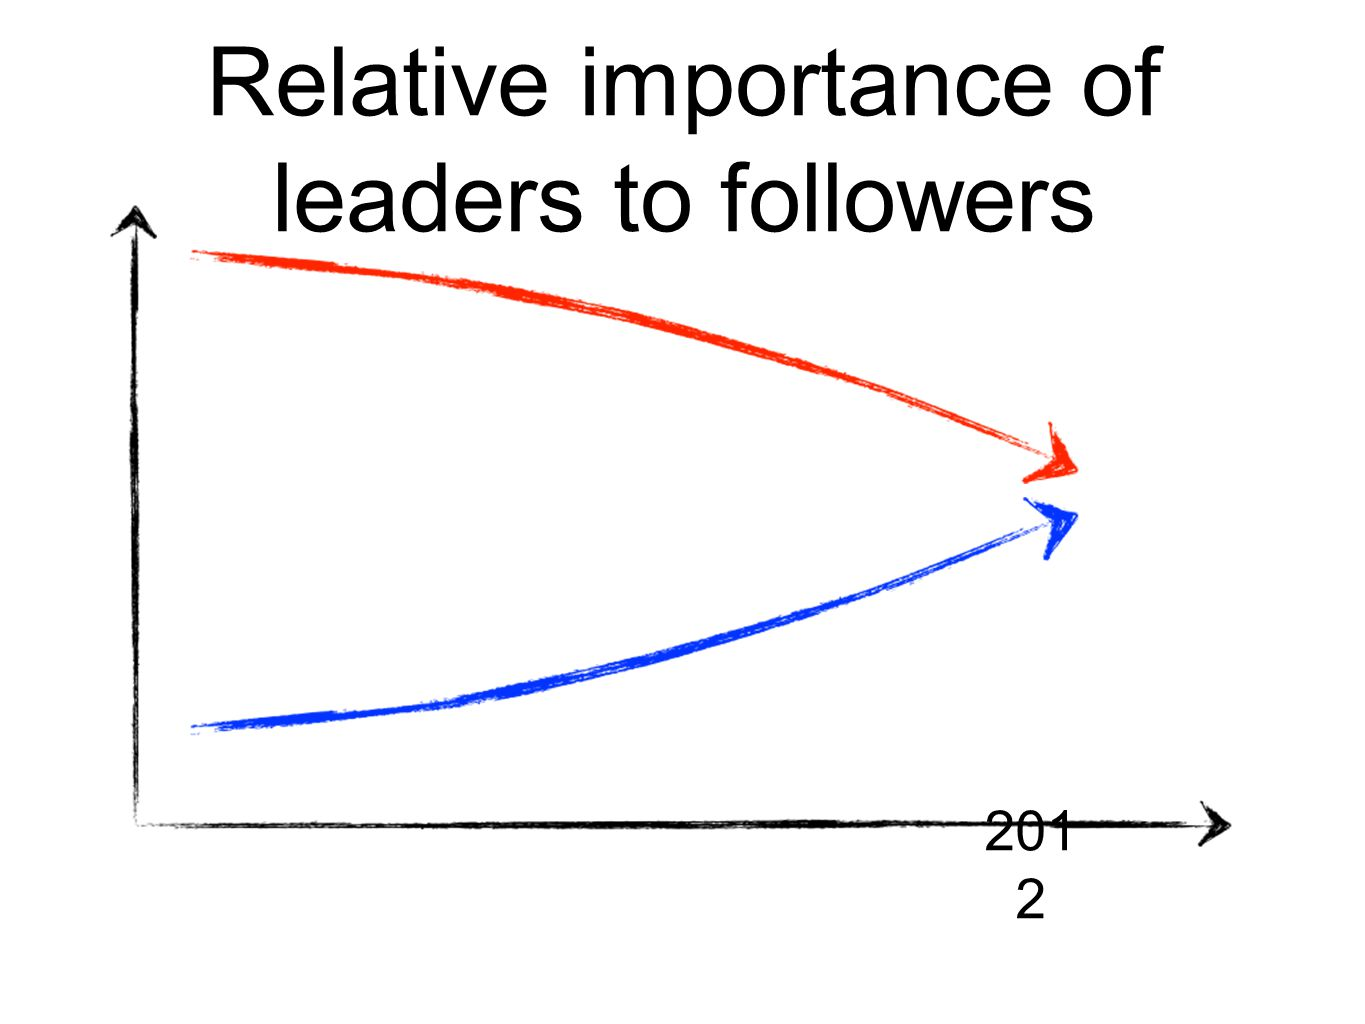 Relative importance of leaders to followers 201 2